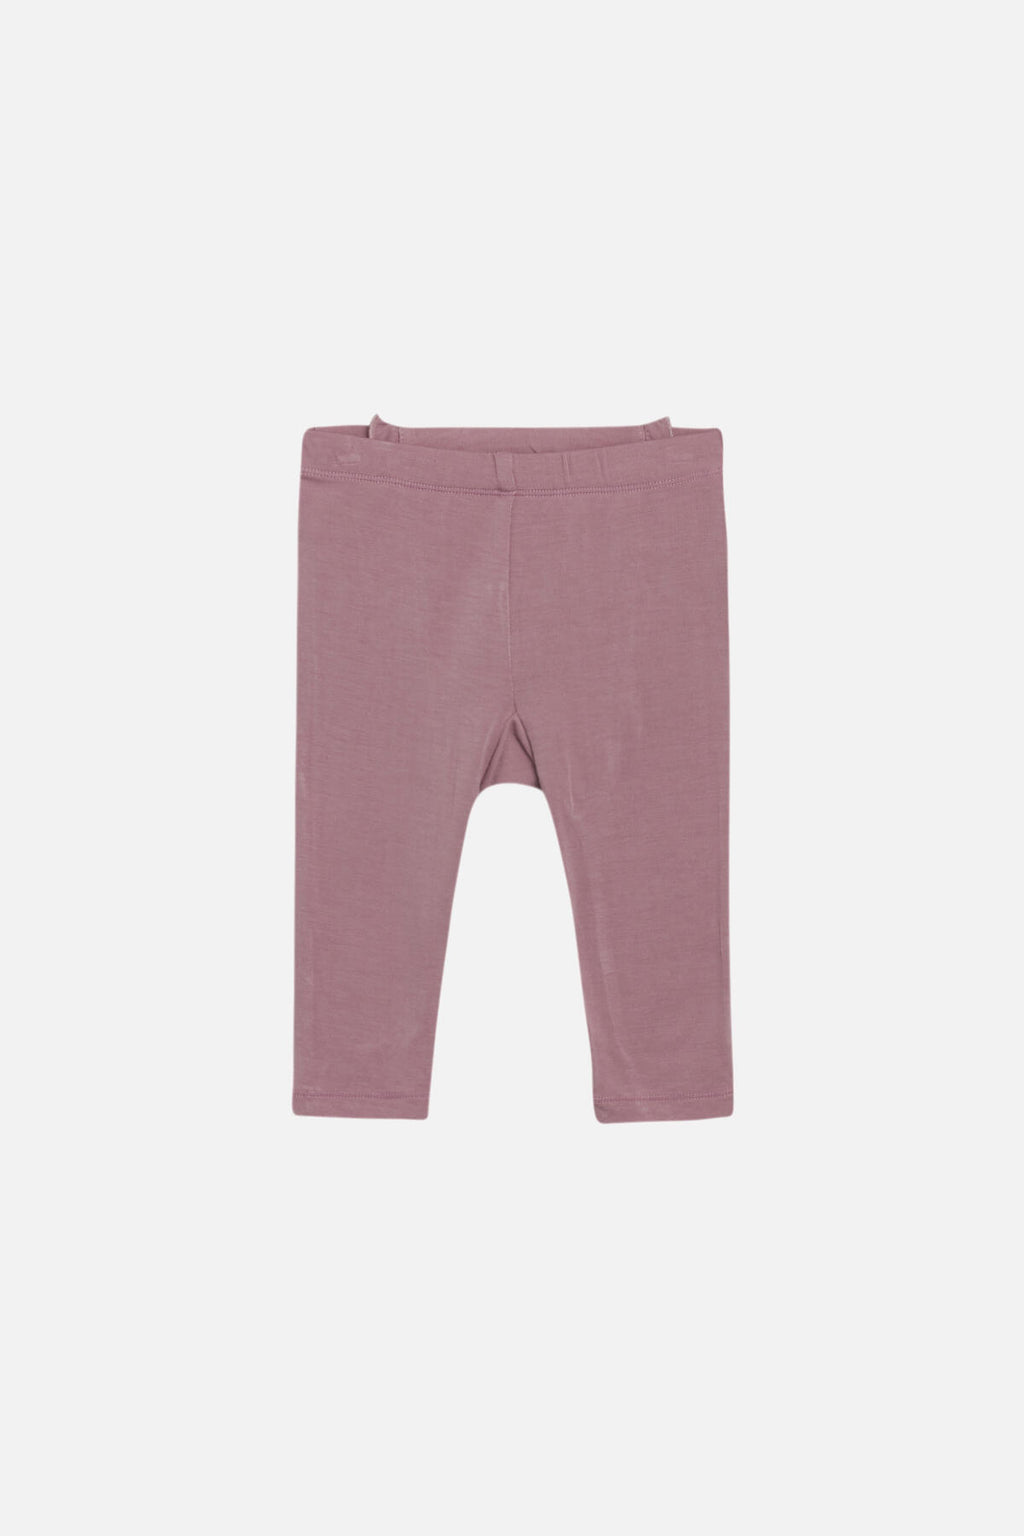 Hust and Claire Lucia Leggings Baby Plum